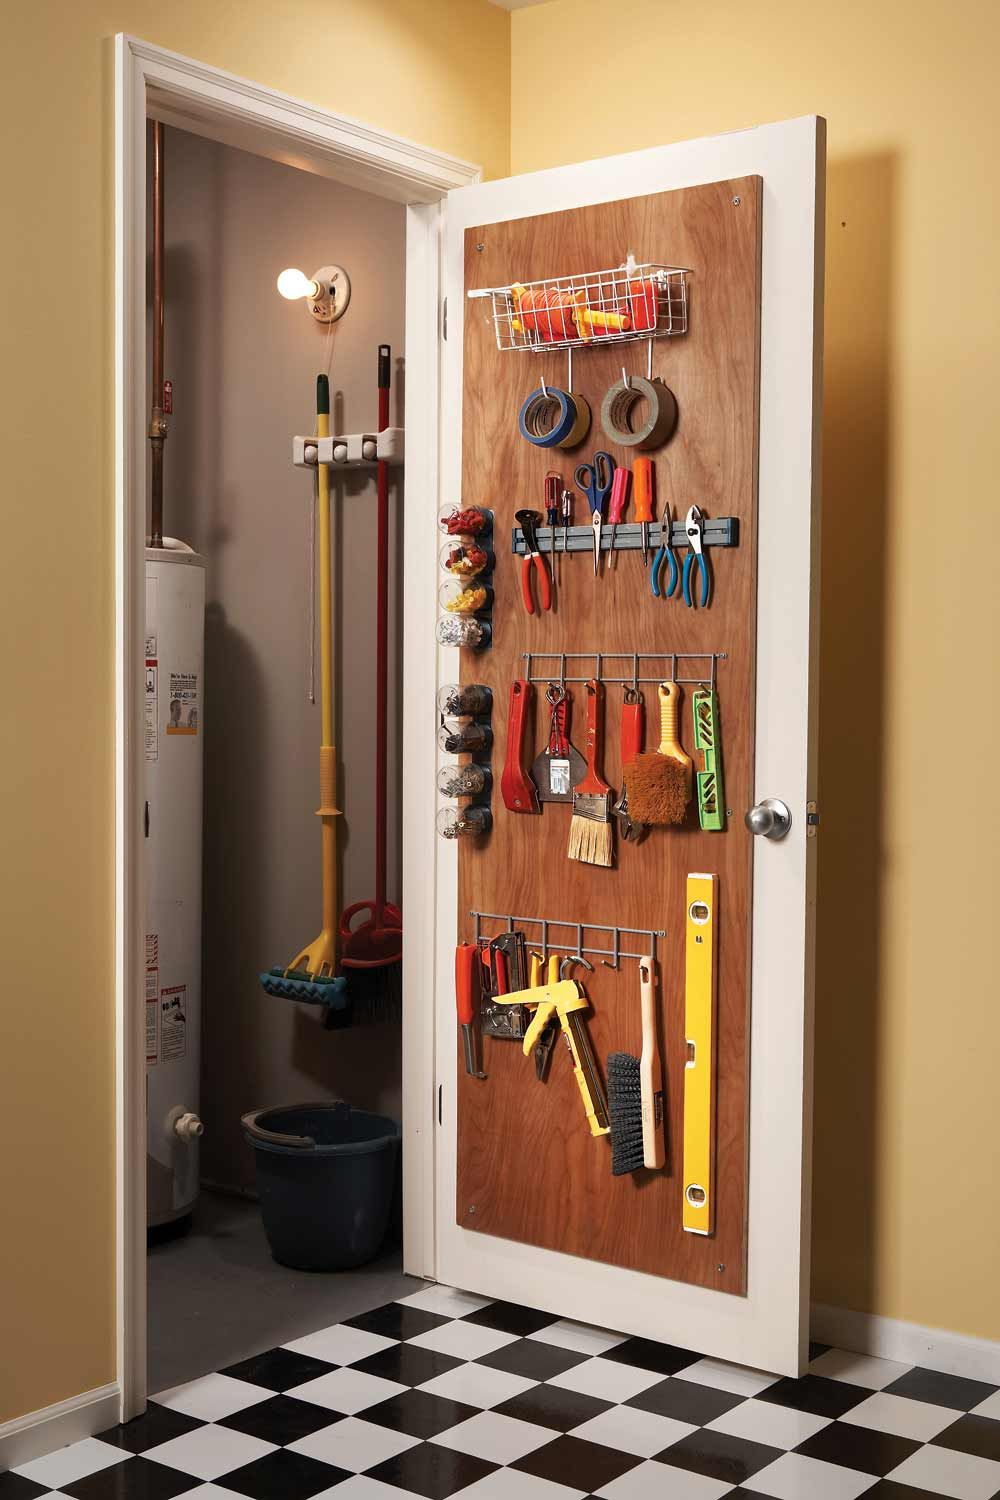 Back Of Door Organizer: For Storing Tools And Other Clutter. #organizing  #organize #storage